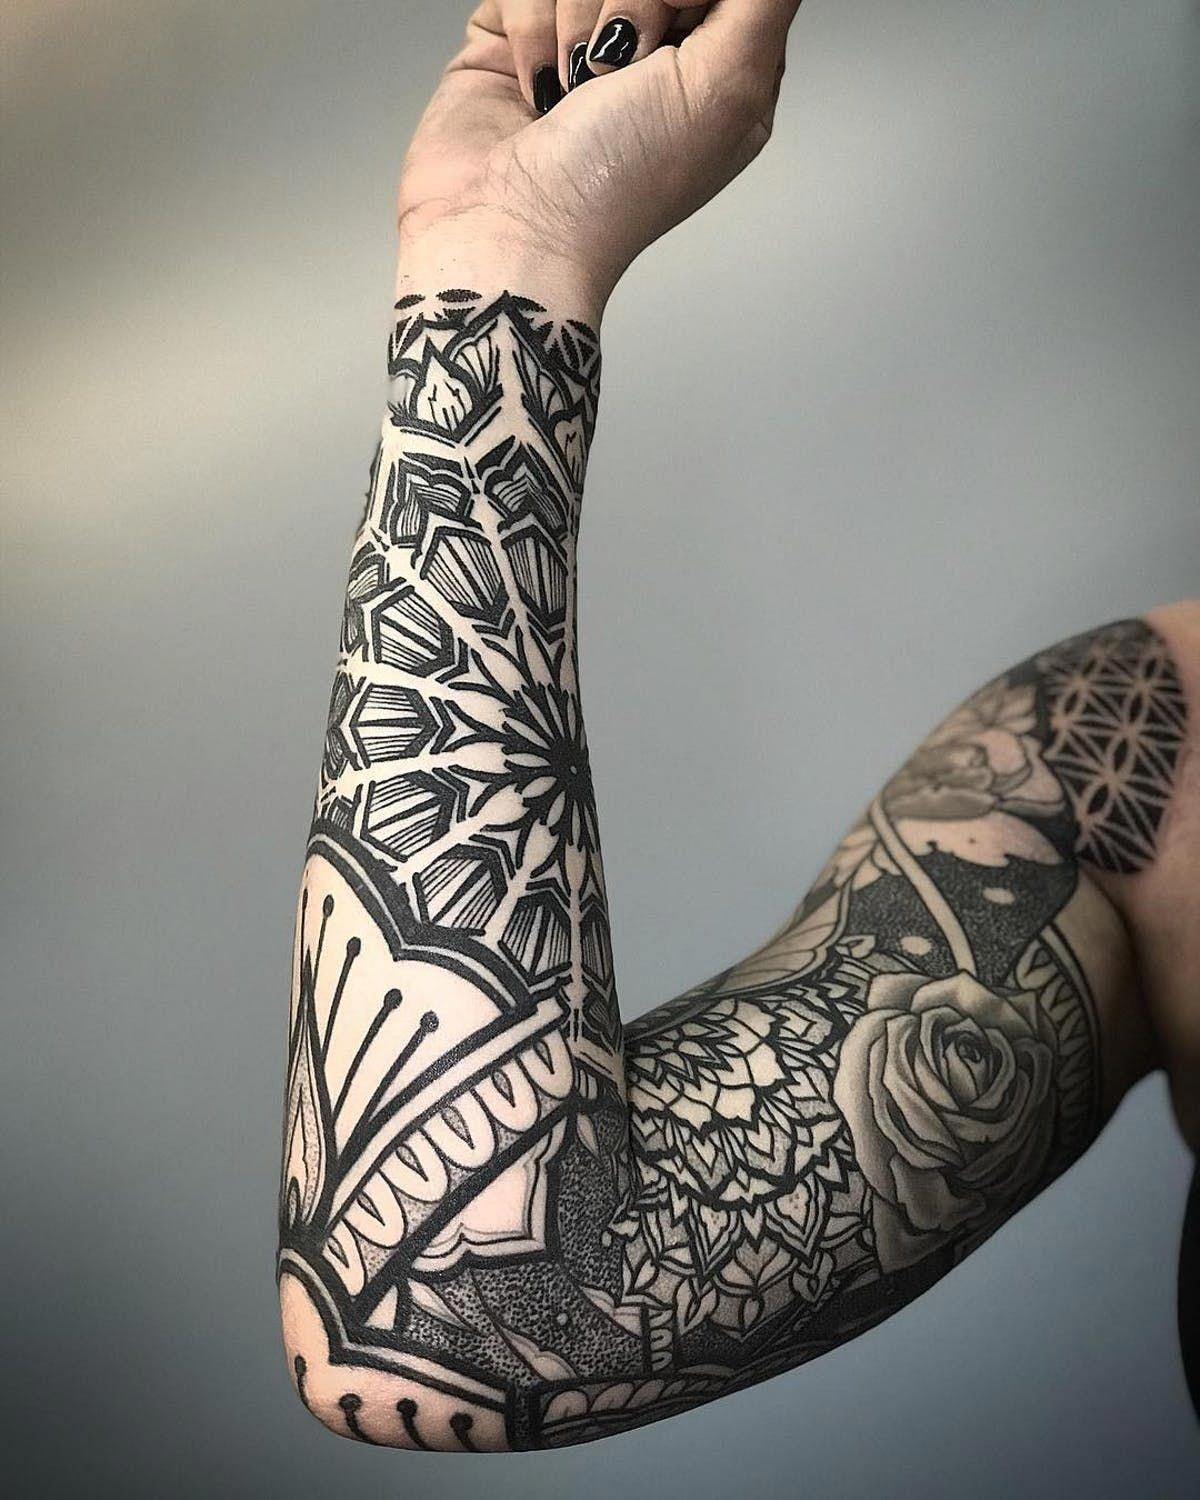 Mandala Pattern Sleeve Dotwork Blackwork Geometric Ornamental Mandalatattoo Geometrictattoo Sl Best Sleeve Tattoos Pattern Tattoo Full Sleeve Tattoos